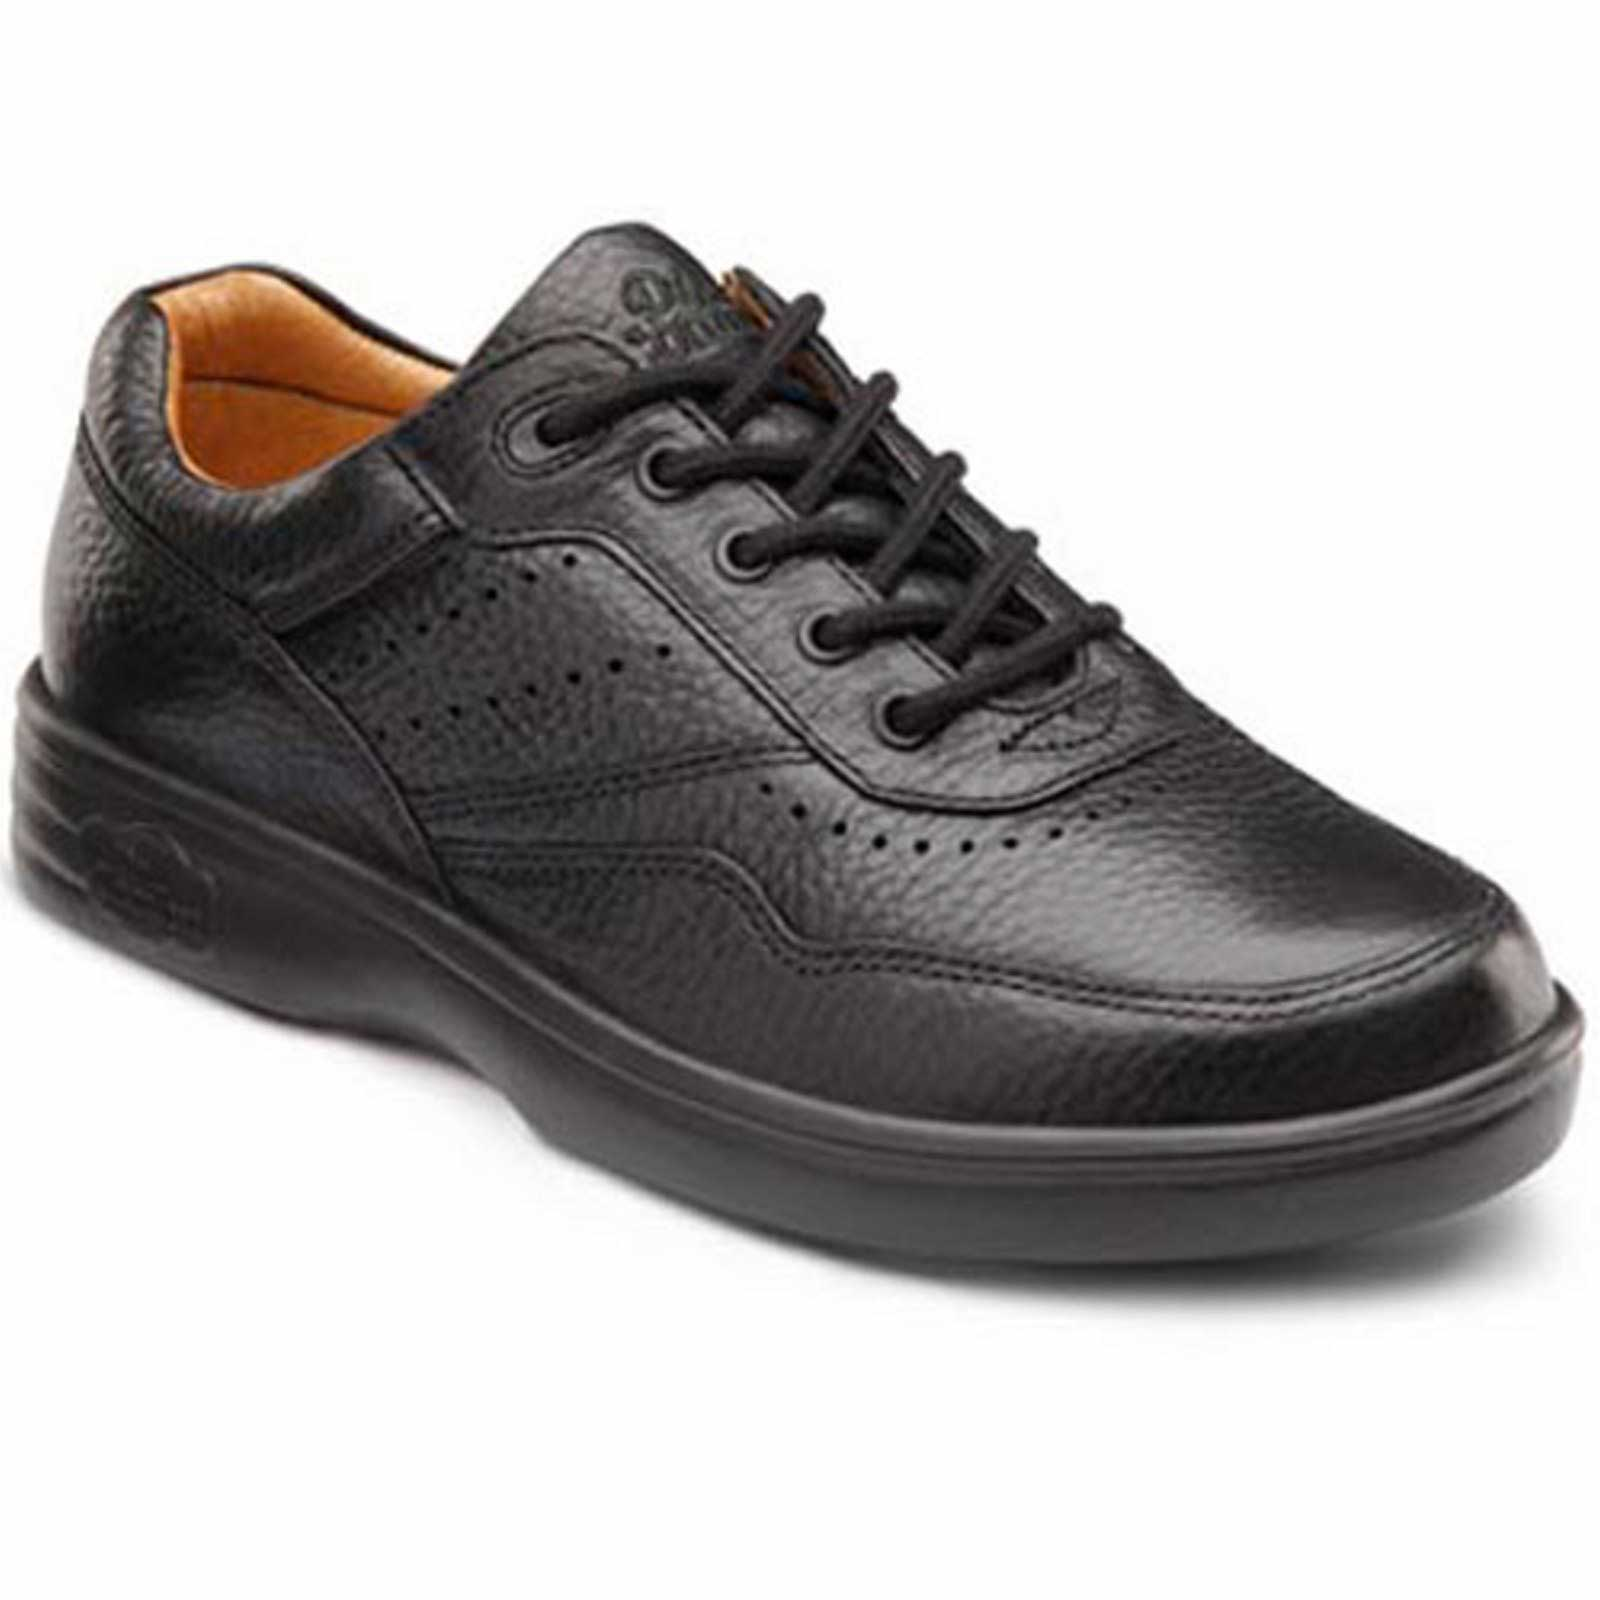 Comfort Shoes For 28 Images Dr Comfort Patty S Therapeutic Diabetic Depth Dr Comfort Shoes